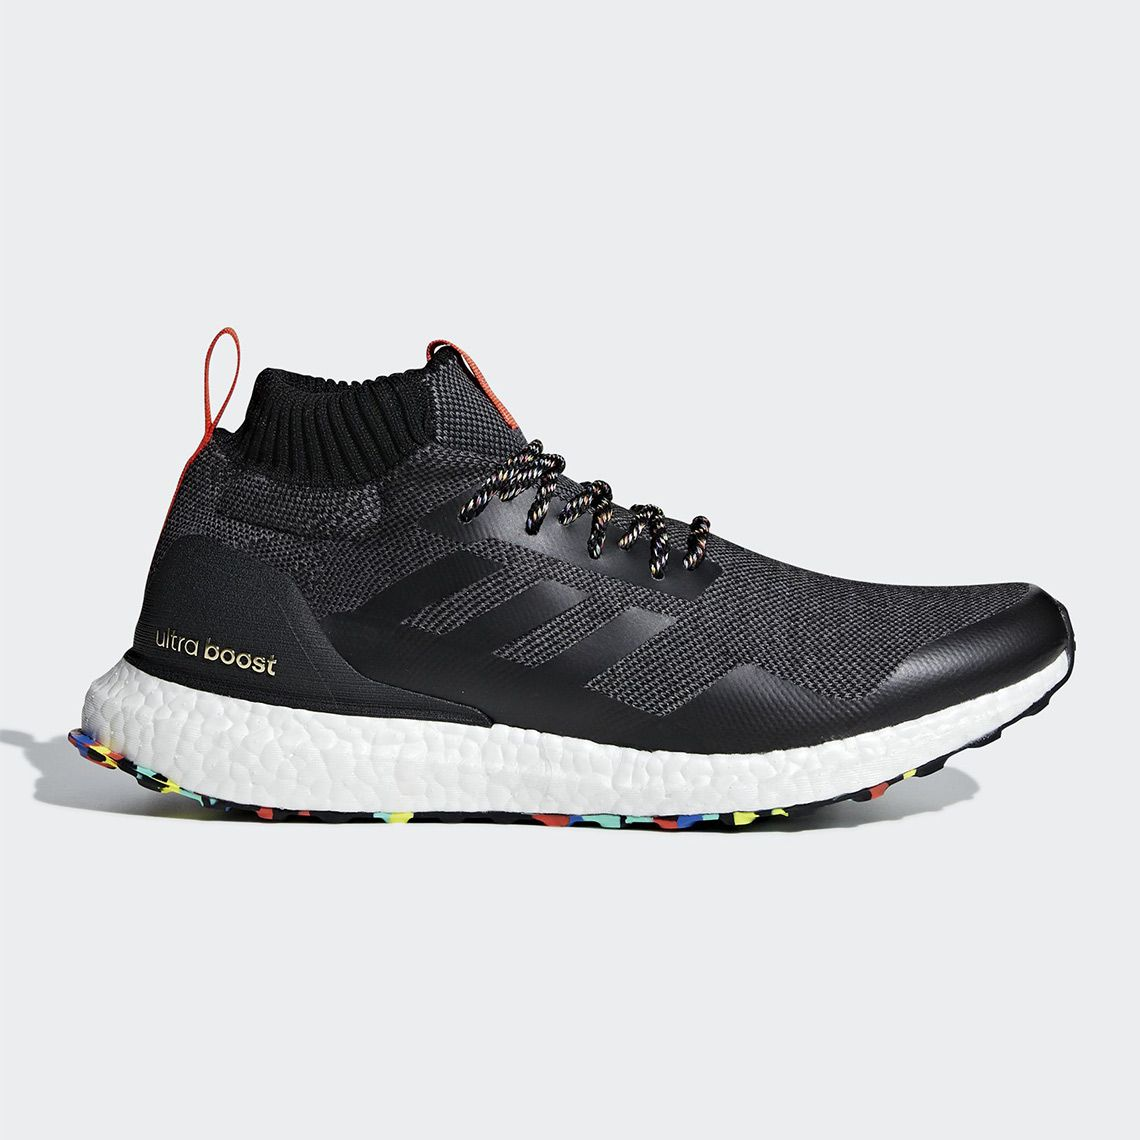 ultra boost mid shoes